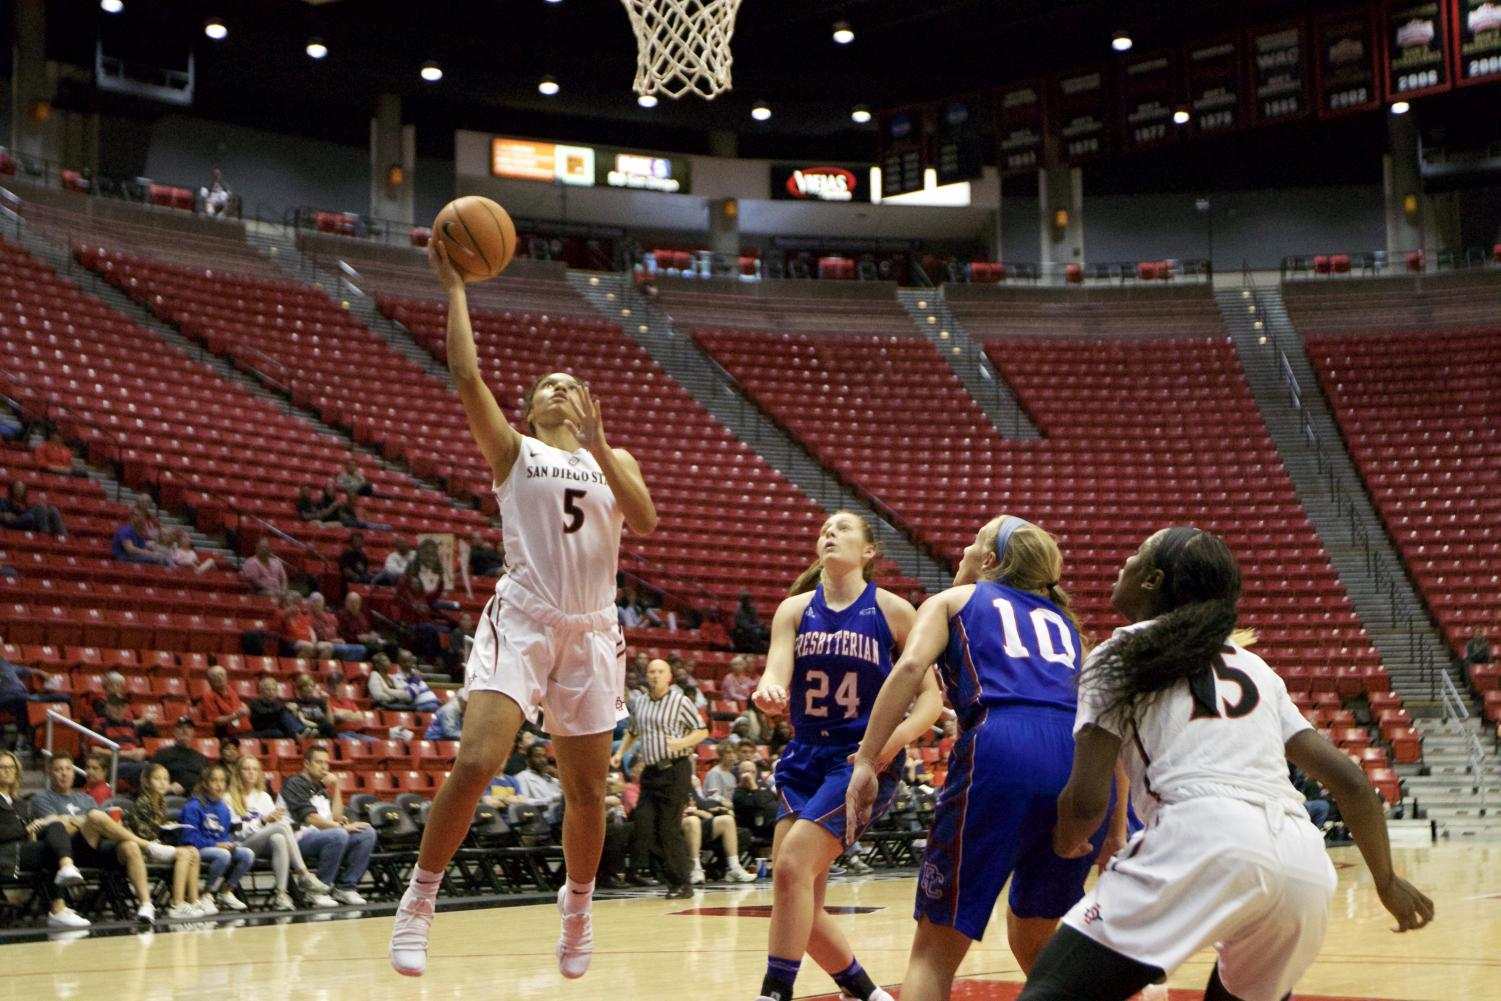 Freshman guard Te'a Adams goes for a layup during SDSU's opening-game win over Presbyterian on Nov. 10.